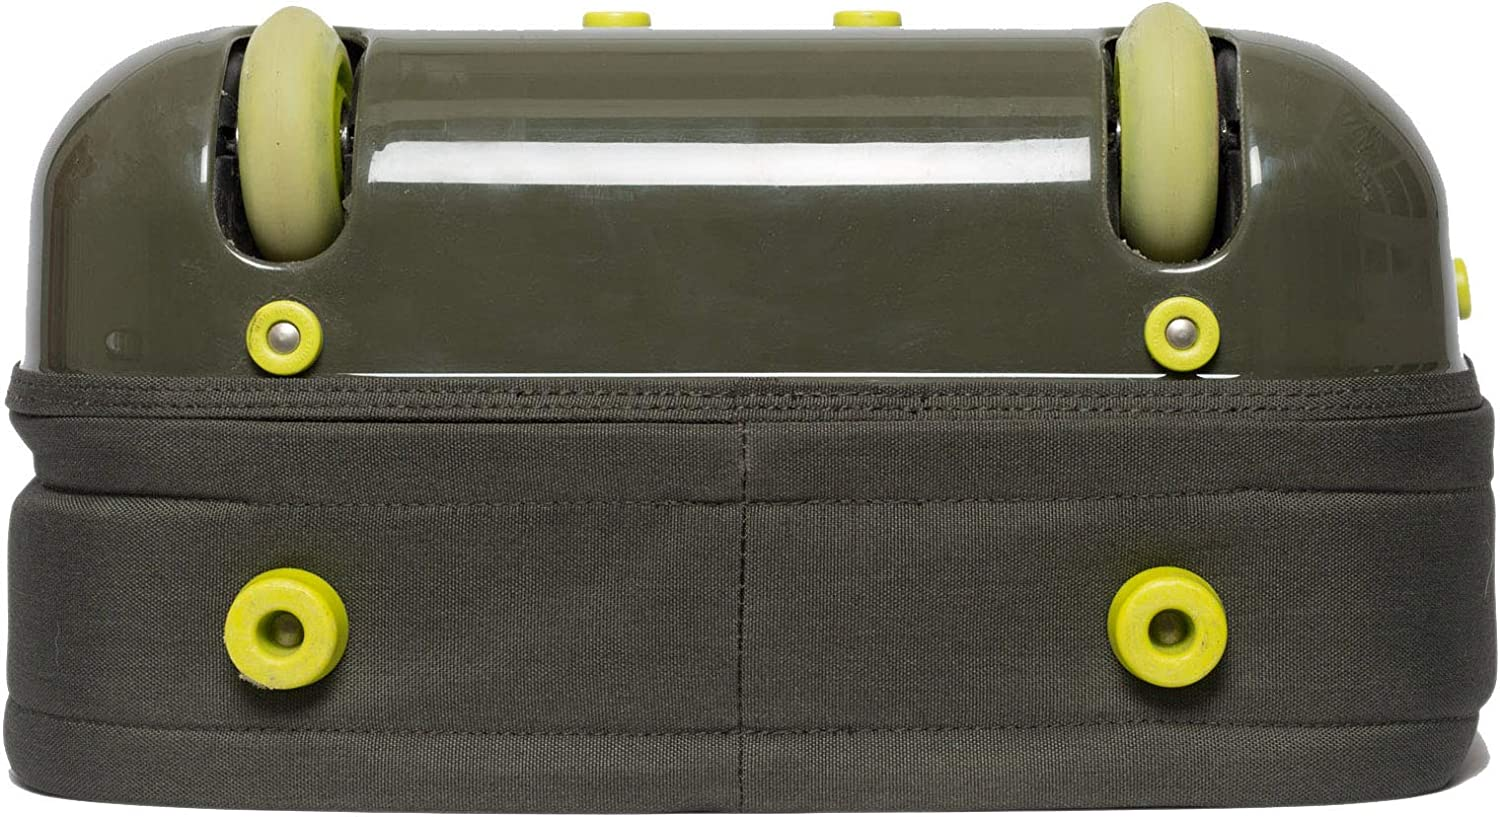 Army Green Zixag Airbag 21 Light Weight Carry-on Luggage Suitcase